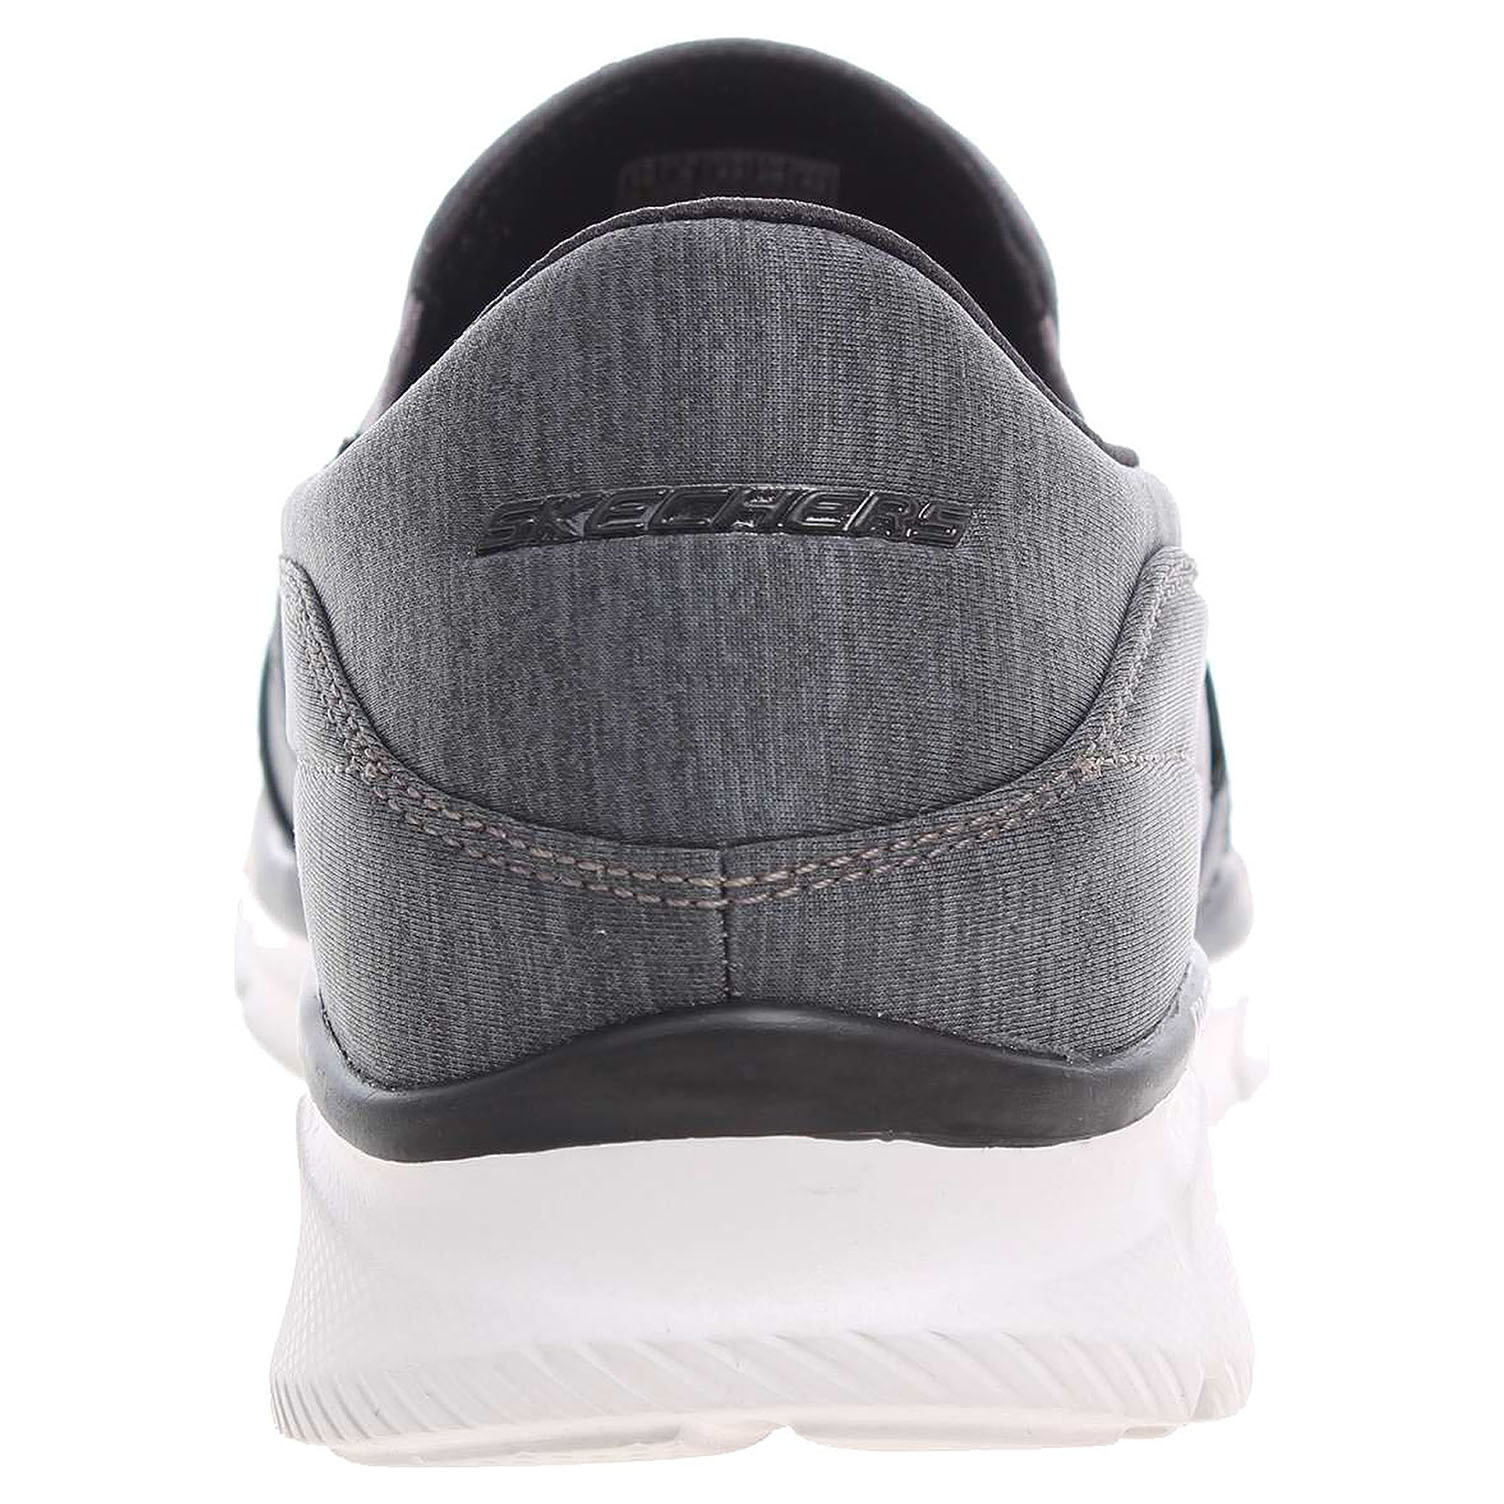 detail Skechers Forward Thinking charcoal-black